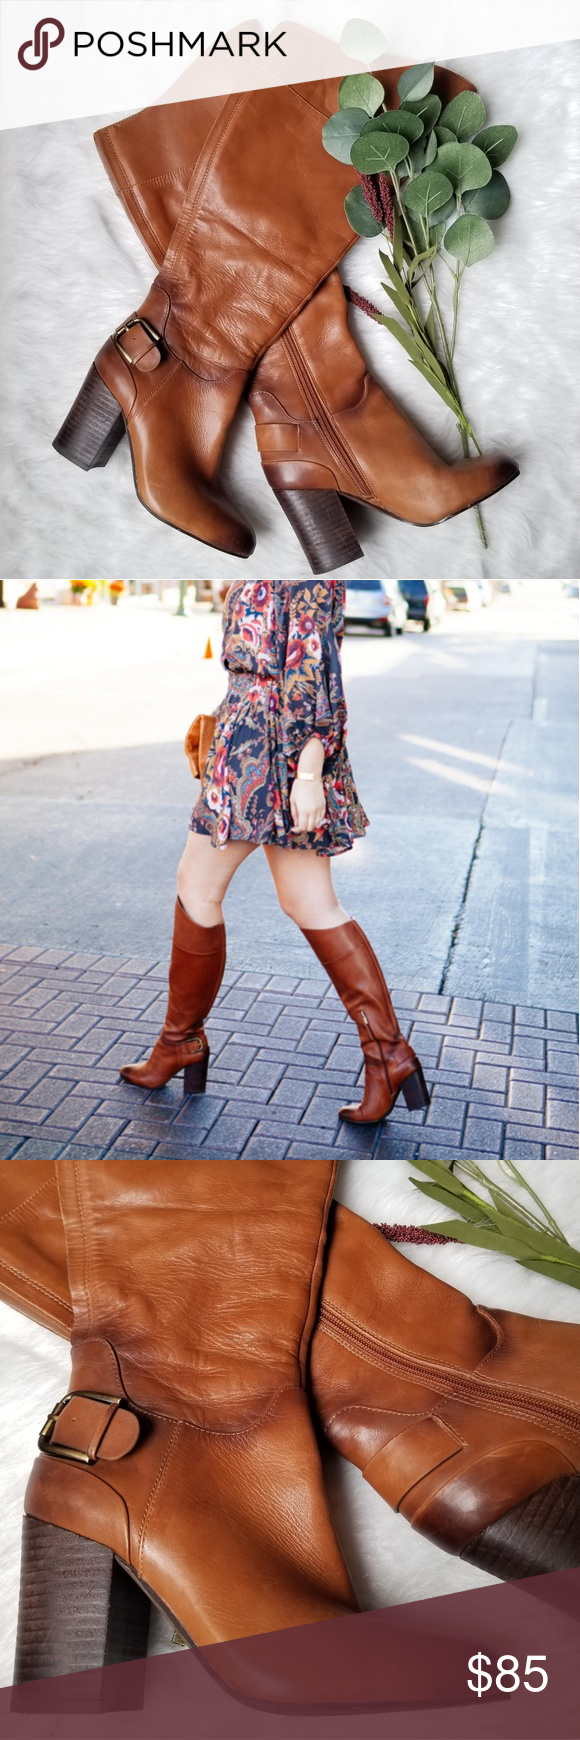 6a3a8a6061a79 Vince Camuto Sidney Tall Leather Stacked Heel Boot Vince Camuto Sodney Tall  boot in brown is